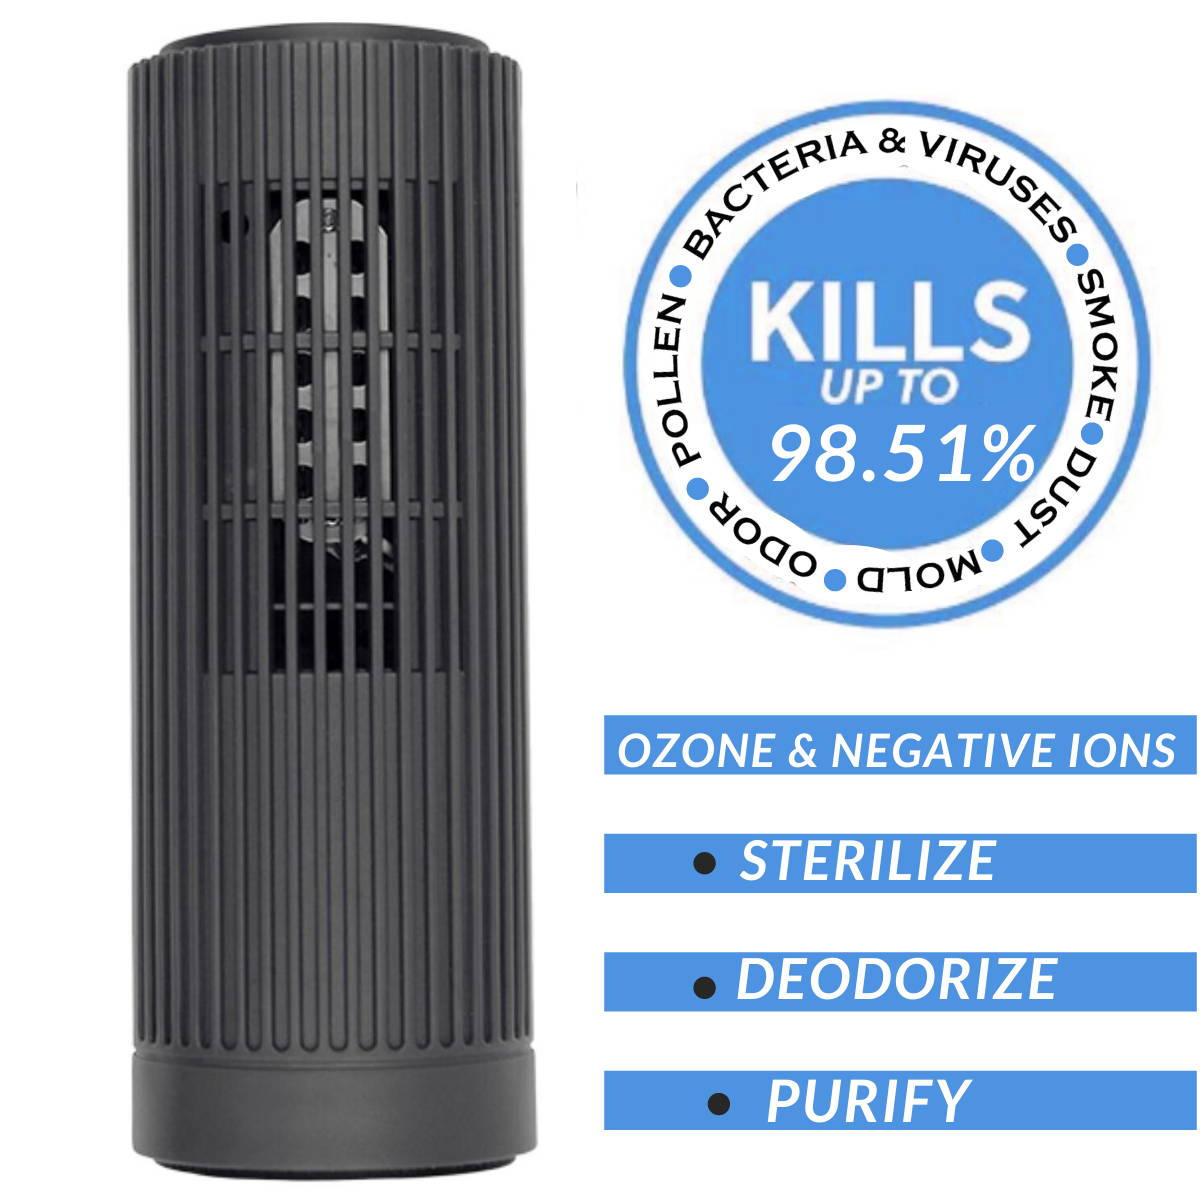 portable air purifier battery operated portable air purifier best portable air purifier bed bath and beyond portable air purifier best buy portable air purifier black portable air purifier for baby quietpure mobiletm portable air purifier by aerus best portable air purifier 2019 best portable air purifier for travel best portable air purifier 2018 best portable air purifier for allergies best portable air purifier for mold best portable air purifier consumer reports